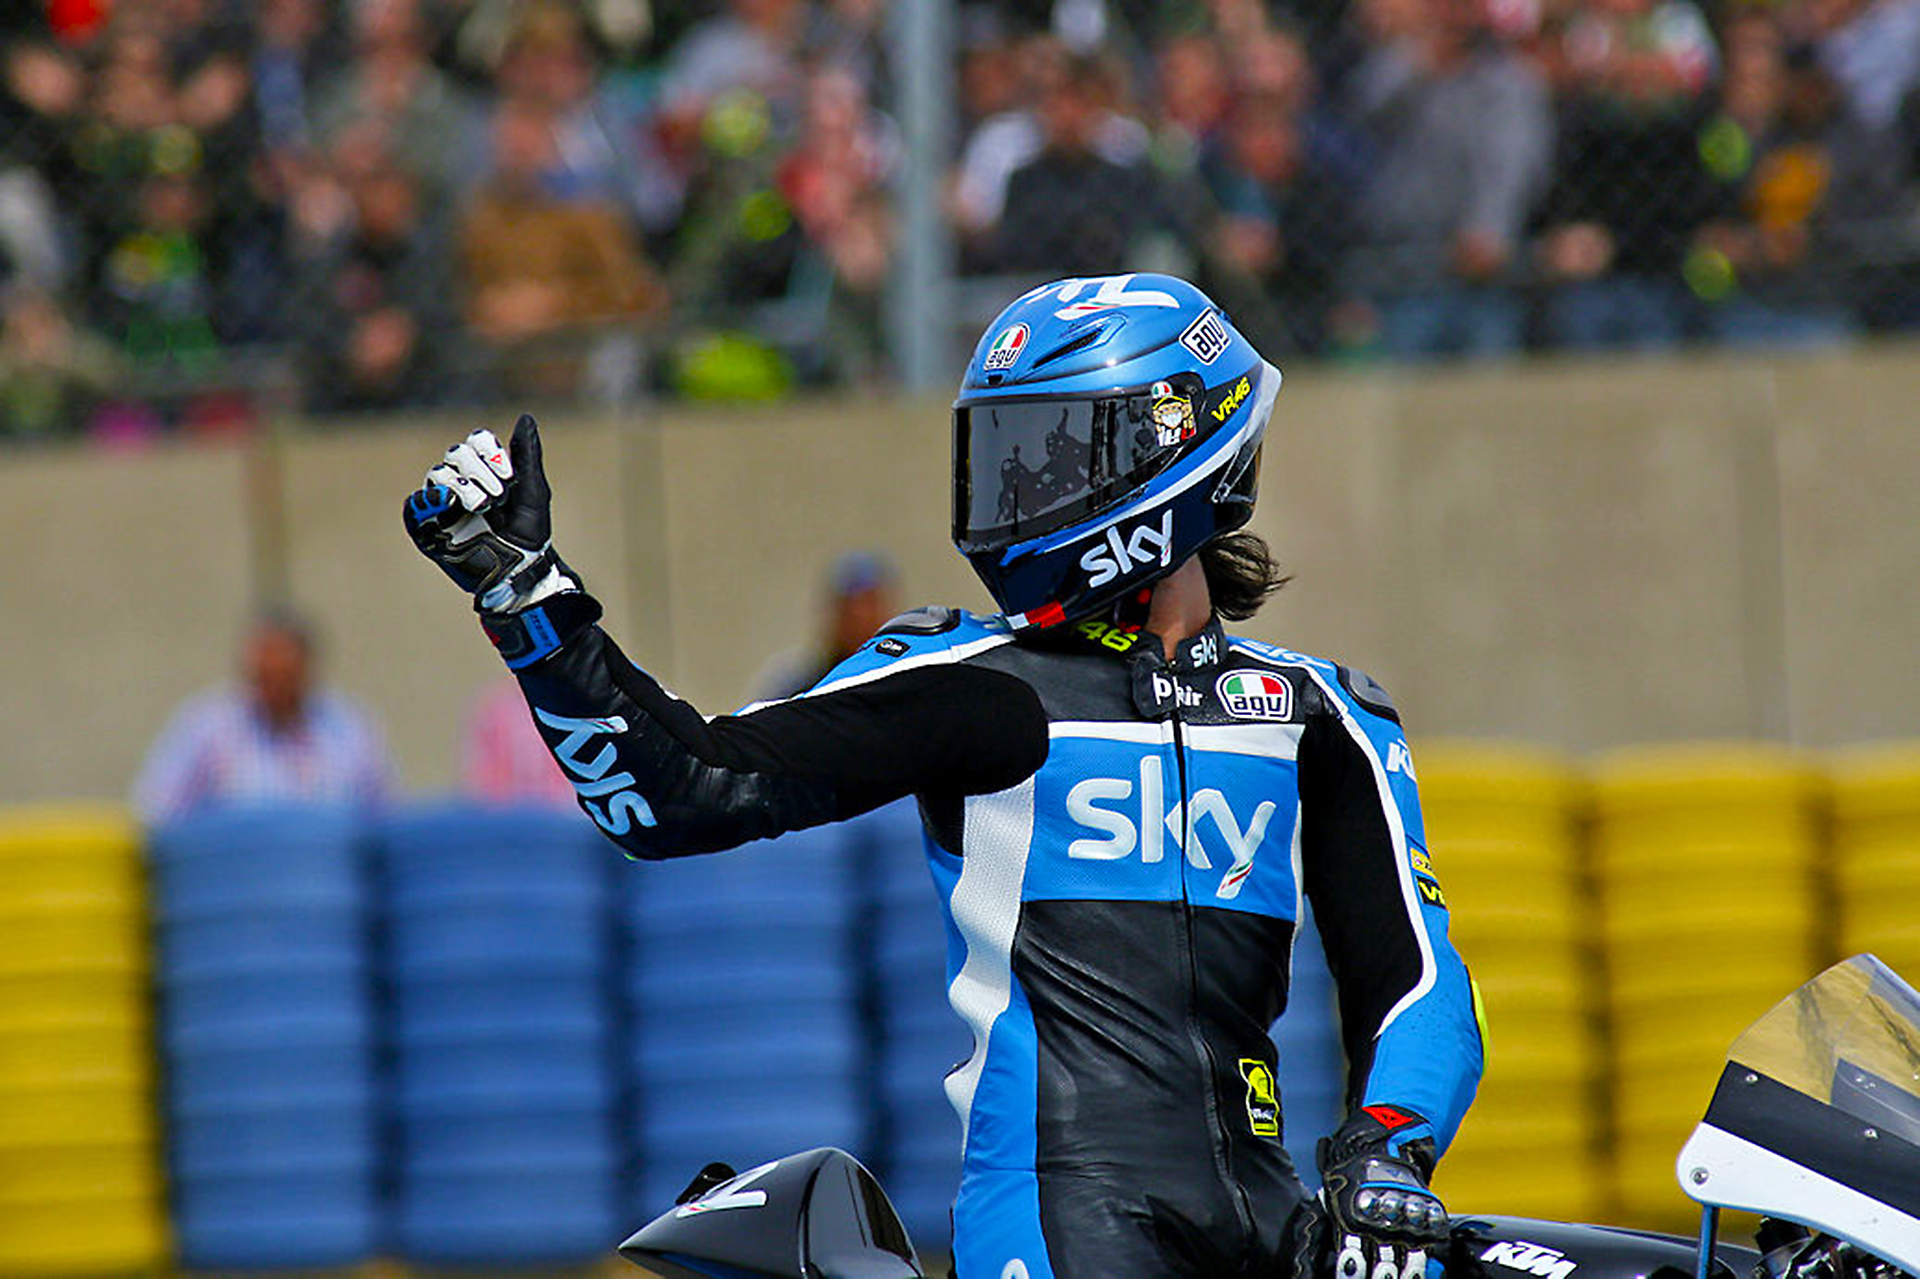 Nicolò Bulega Sky Racing Team celebrates the good result of the Moto3 race